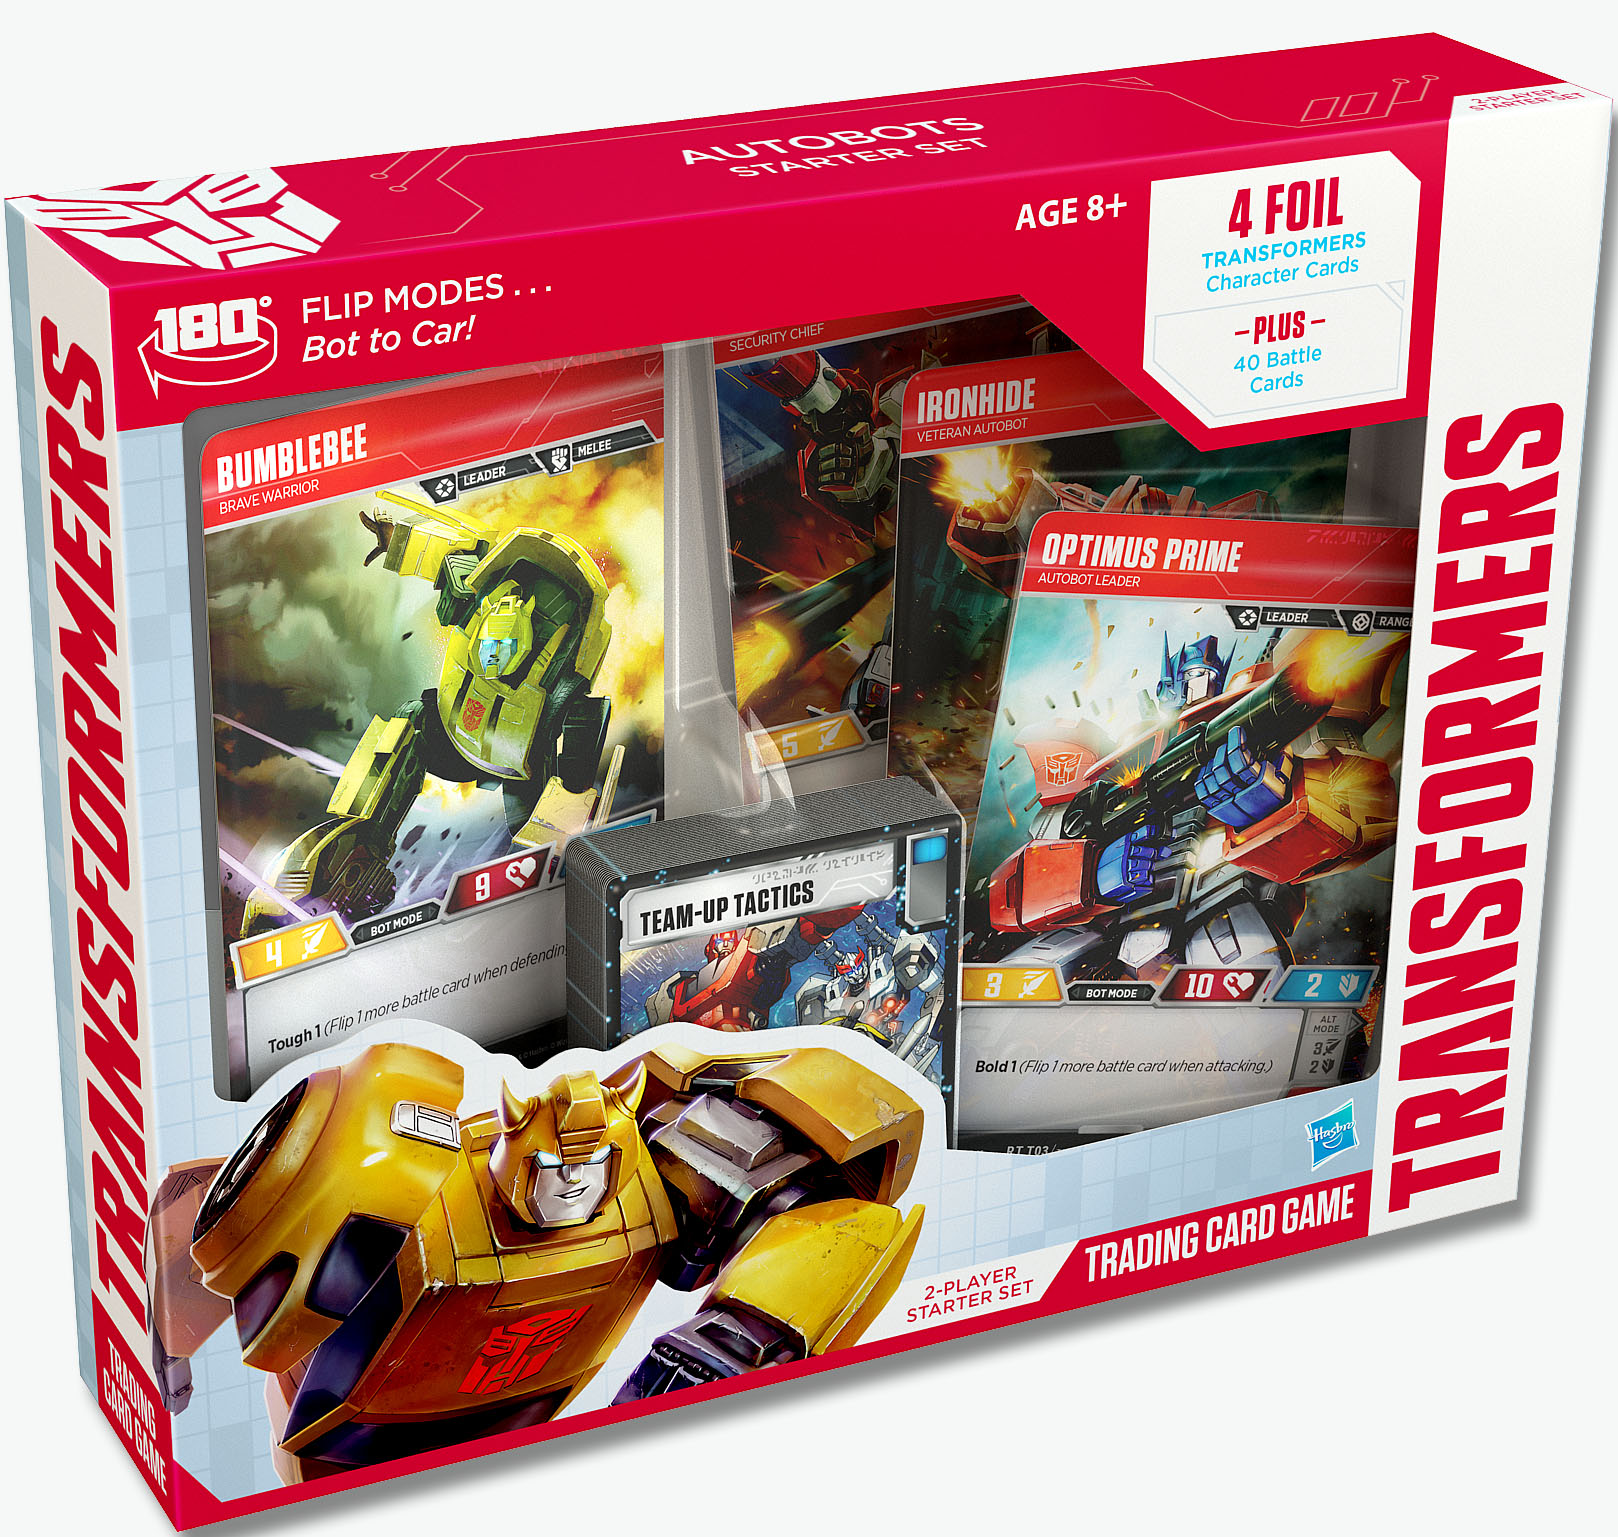 [WATCH] Roll out for the new Transformers Trading Card Game